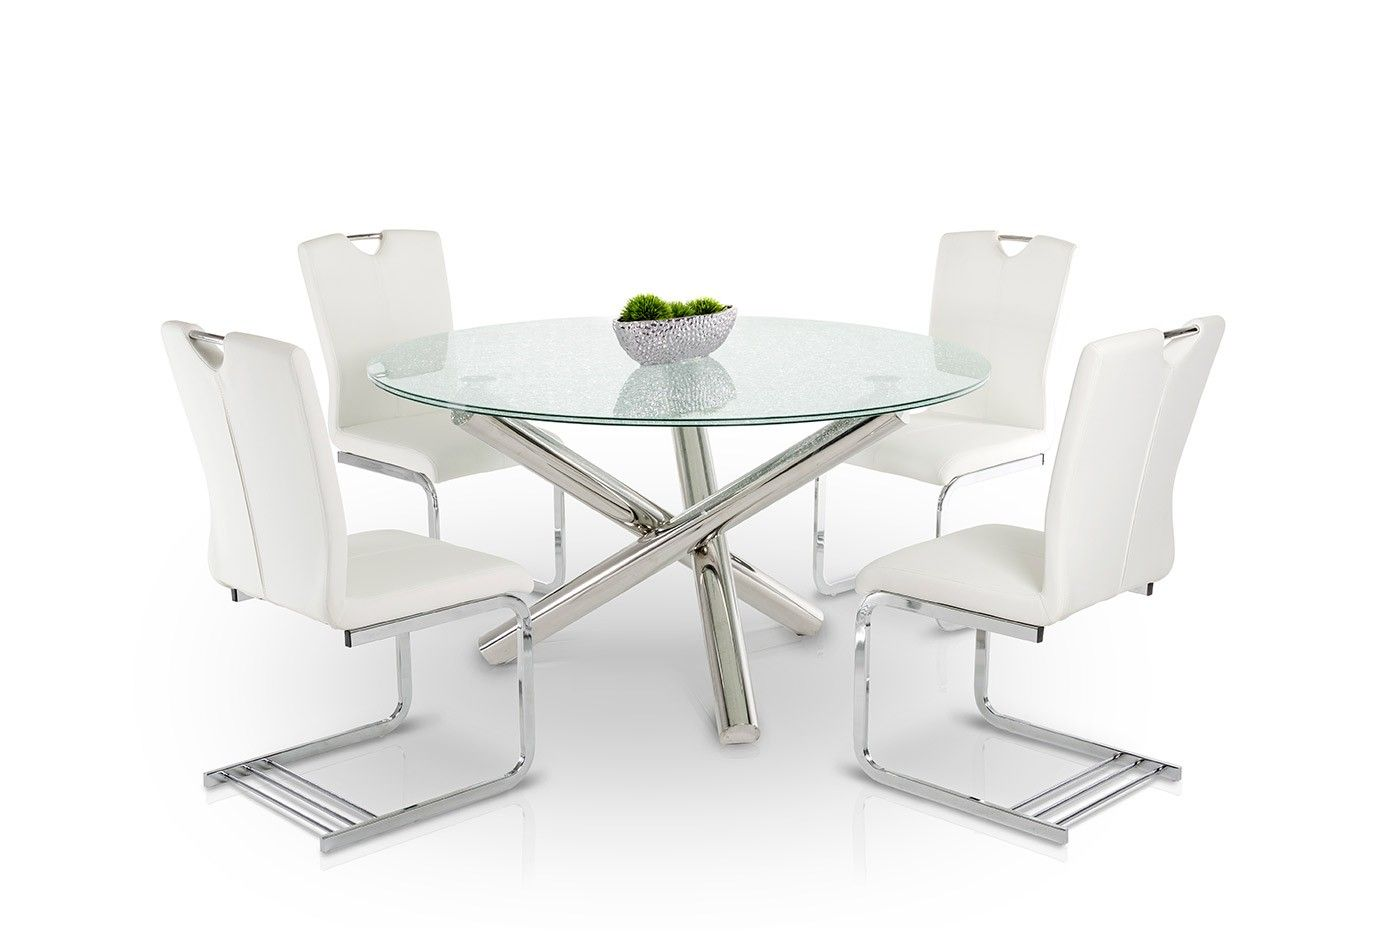 Frau modern round cracked glass dining table rounding for Cracked glass dining table